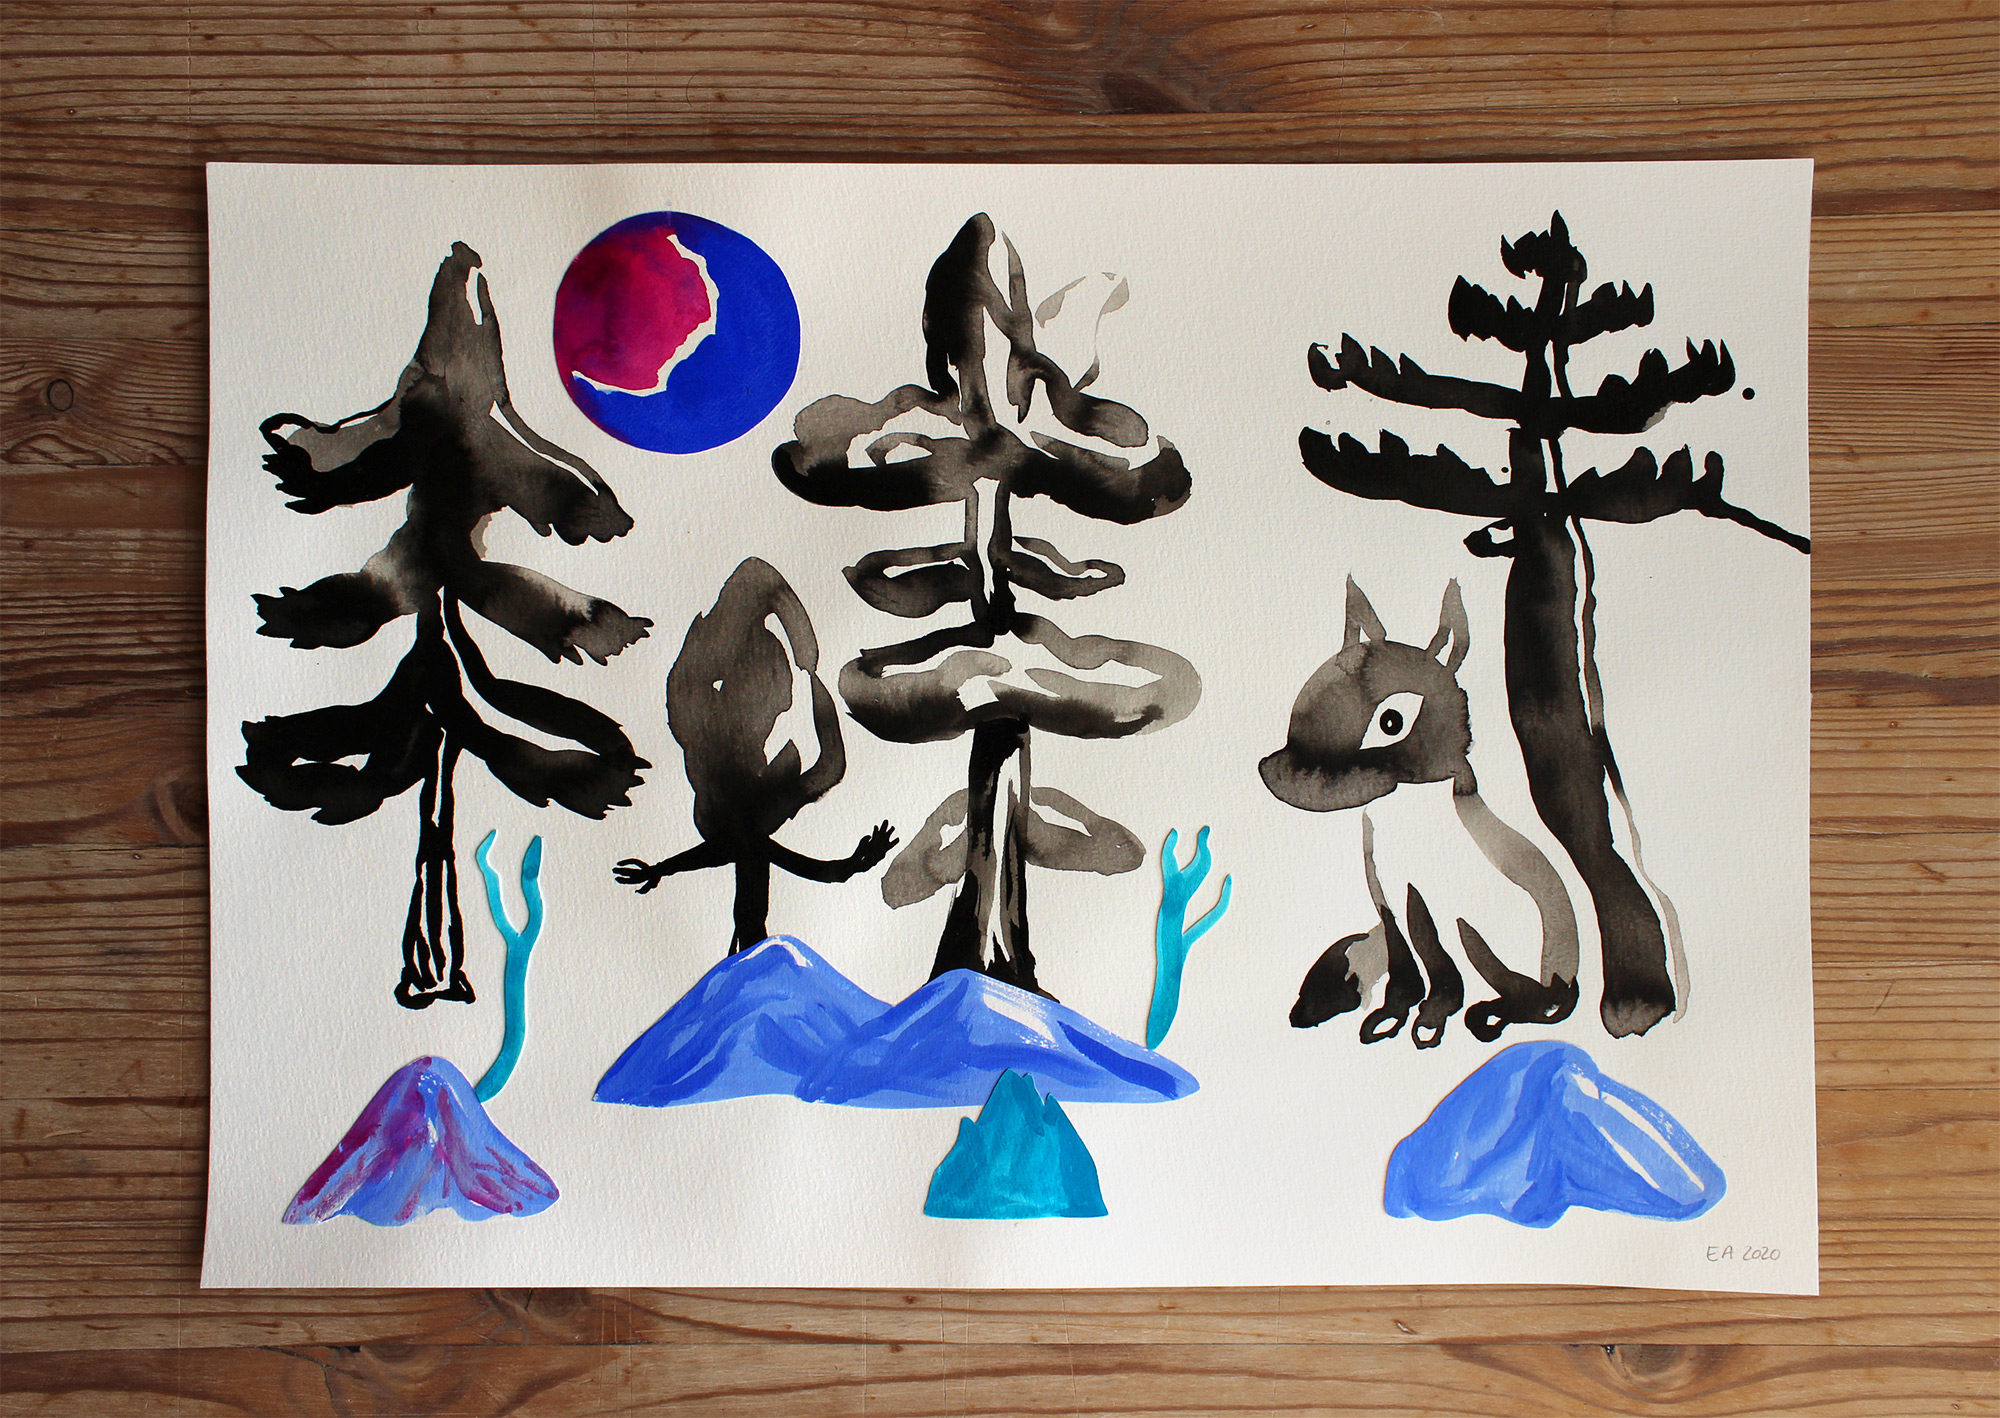 drawings, gouache-painting, watercolor-paintings, colorful, family-friendly, figurative, landscape, minimalistic, pop, animals, botany, nature, wildlife, black, blue, gouache, ink, paper, beautiful, danish, decorative, design, forest, interior, interior-design, modern, mountains, nordic, plants, posters, pretty, prints, scandinavien, Buy original high quality art. Paintings, drawings, limited edition prints & posters by talented artists.